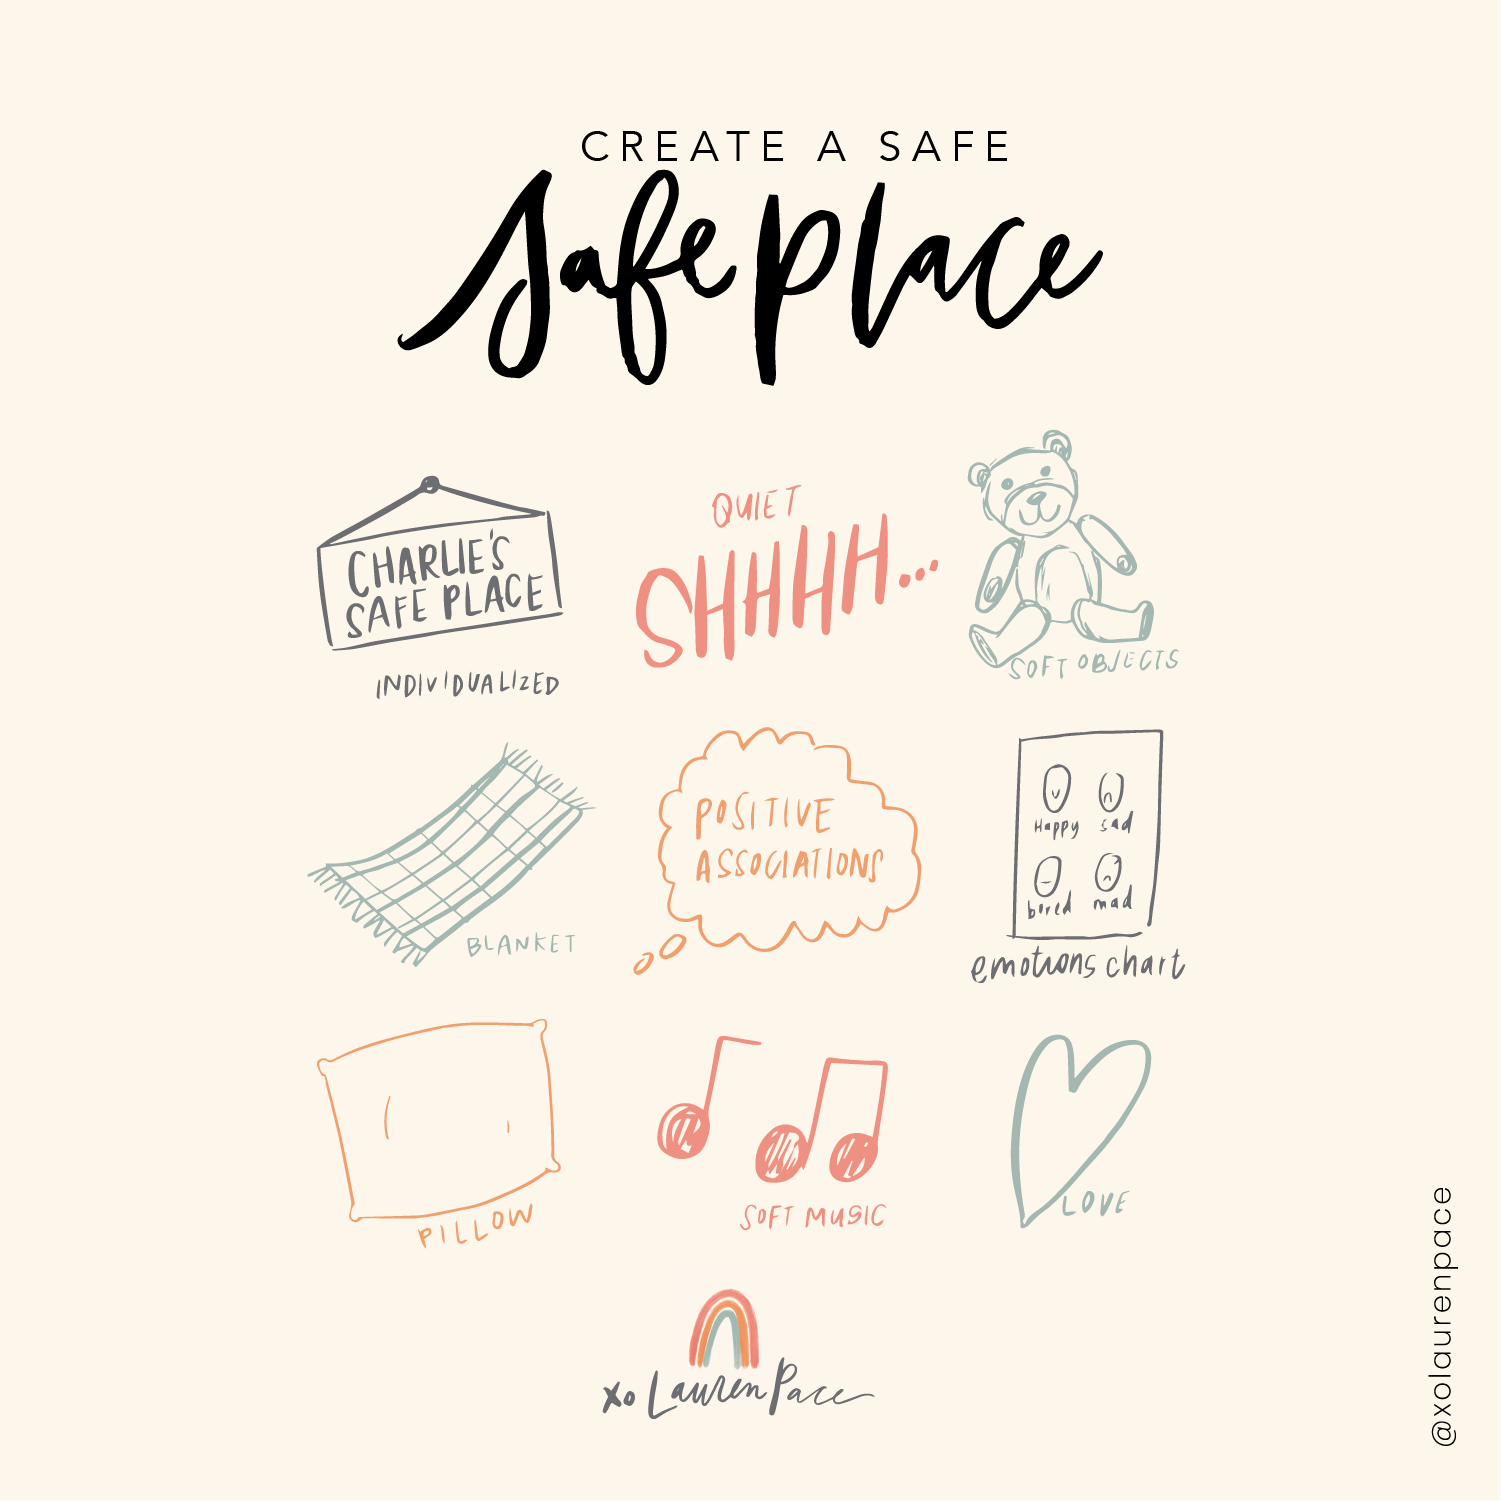 """""""Safe Place"""" Instead of Time-outs⠀⠀⠀⠀⠀⠀⠀⠀⠀  Everyone in my house has a safe place. When Doodle goes to his bed, that is HIS space. When we are upstairs and Doodle goes under the couch... that is his safe place. We all know this is where Doodle goes to feel safe. And we STAY away. He needs this time and space.⠀⠀⠀⠀⠀⠀⠀⠀⠀  Charlie has a safe place too. If he is starting to have a major meltdown or chooses to continue an unsafe choice... he goes to his safe place. It's NOT a time out. It is NOT a punishment. It's a choice. And it's a choice he knows he's making when he has fits. He can be mad, he can cry and carry on. But he does it in his safe space.... and when he does calm down he can resume his activity or make a new choice. Instead of choosing to have a power struggle or over-explain all his choices... we go to the safe place (sometimes I leave him there to regulate on his own, sometimes I stay with him and hold him). He knows in this space he will calm down. ⠀⠀⠀⠀⠀⠀⠀⠀⠀"""